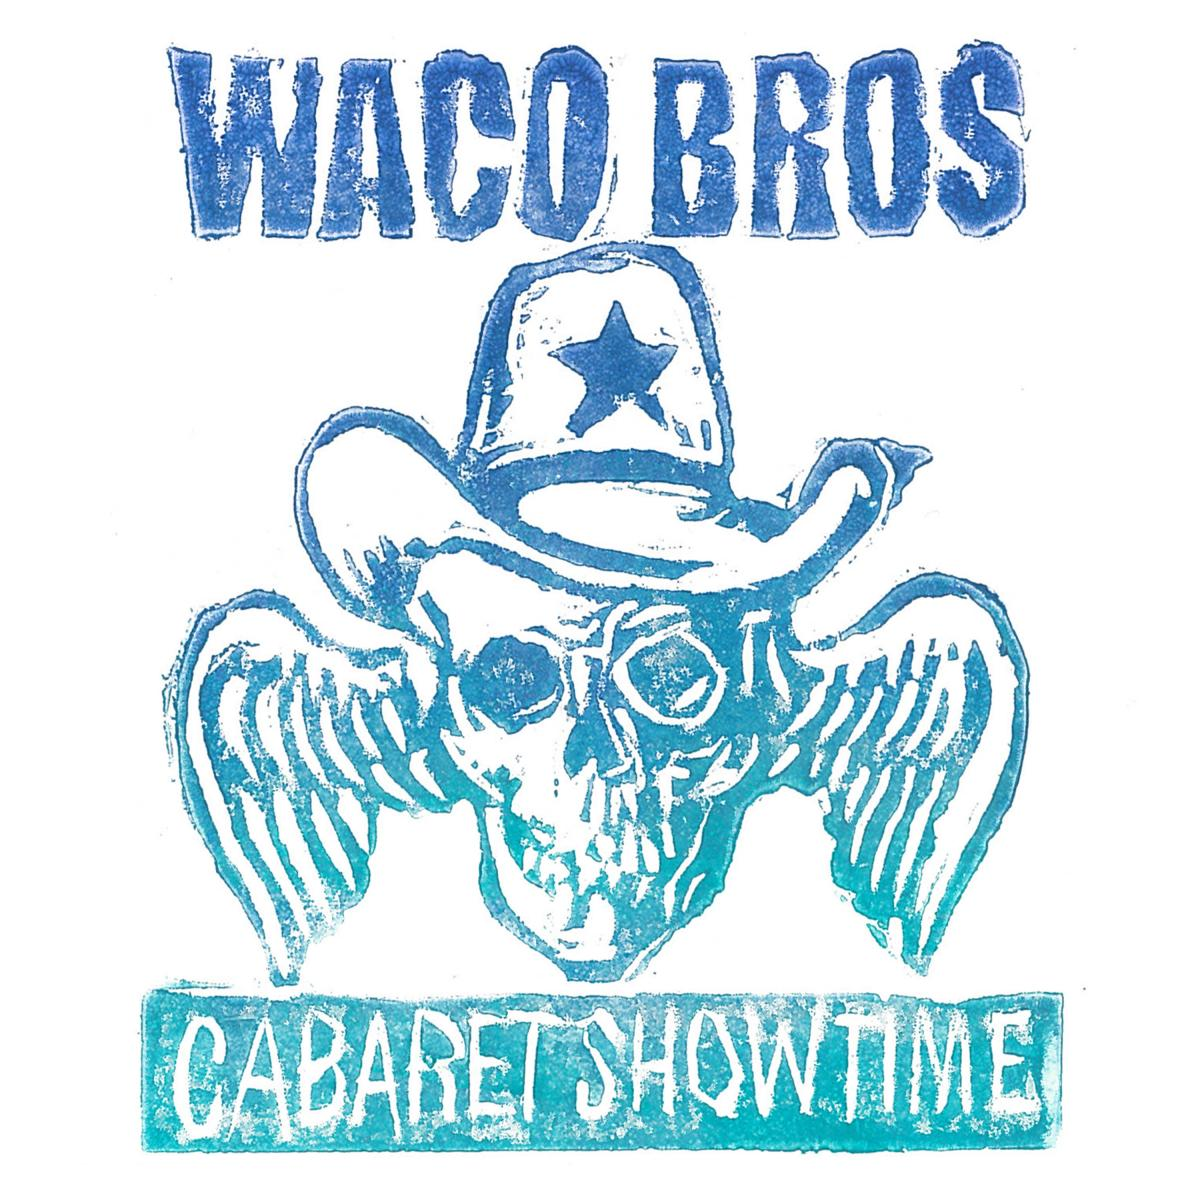 Waco Brothers Cabaret Showtime Album Art Artwork